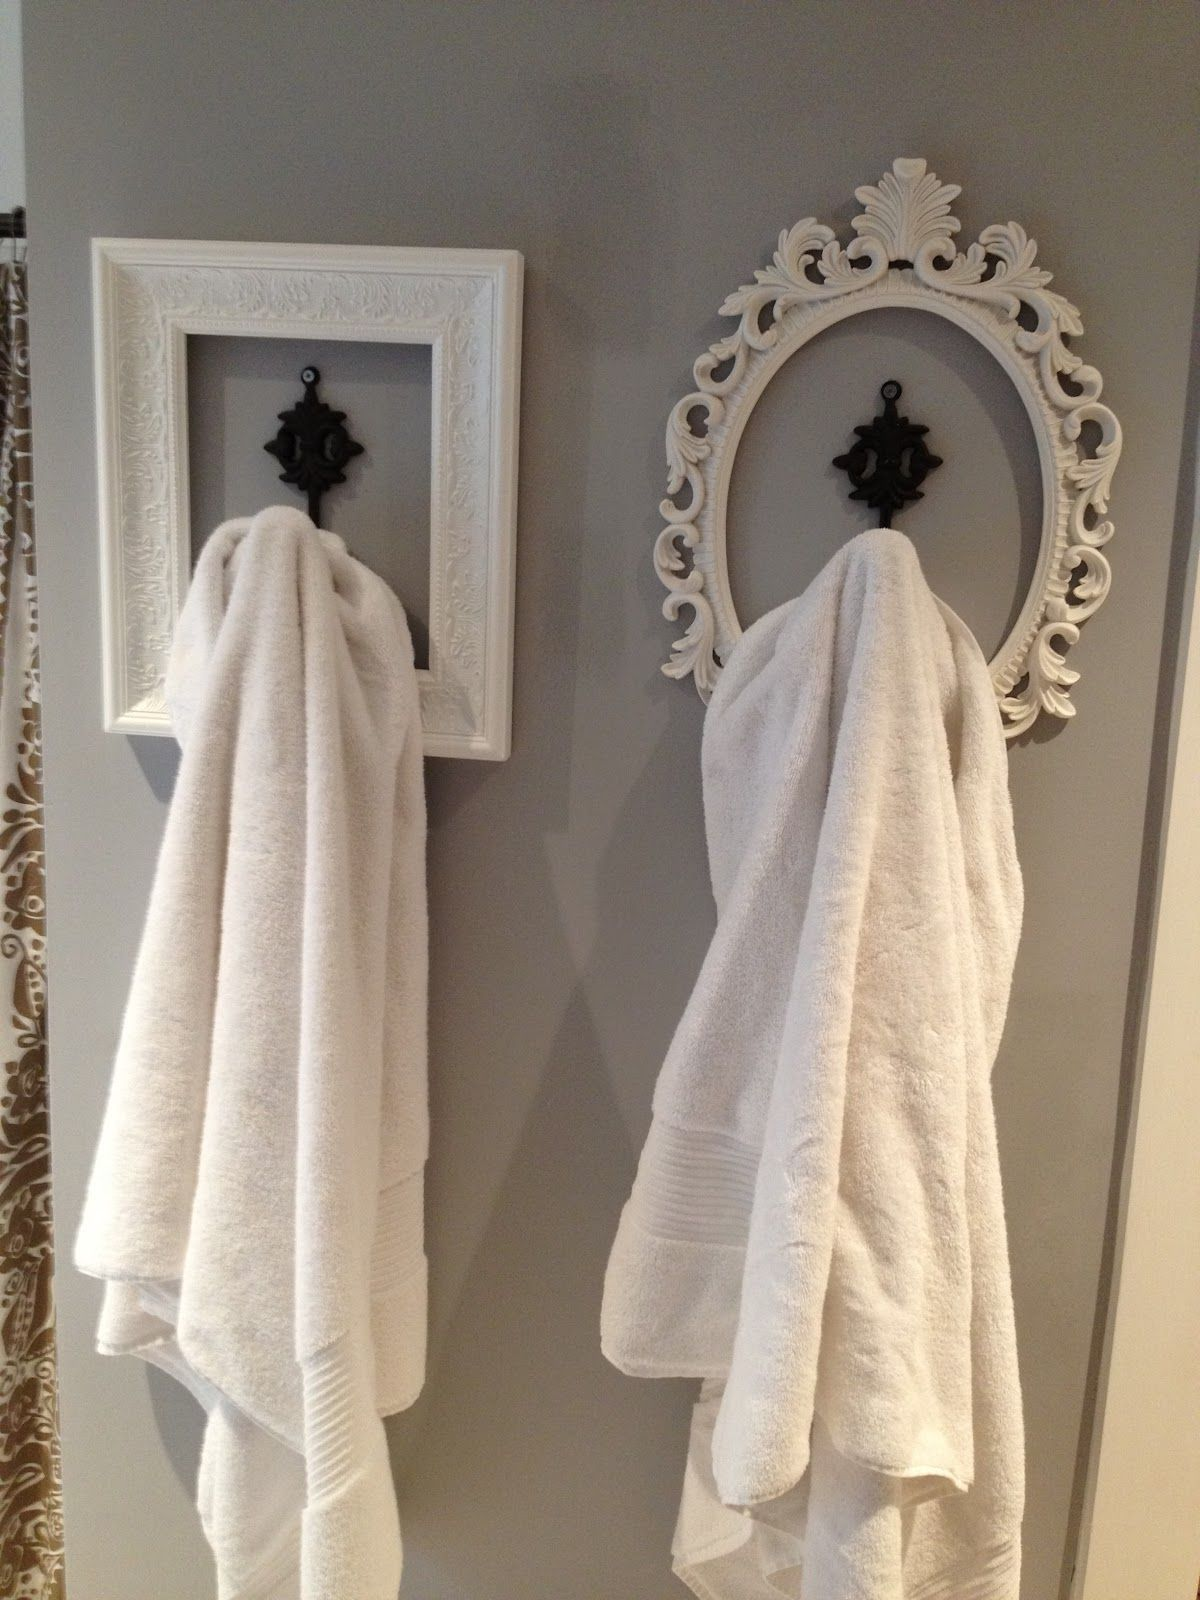 Perfect look for hanging towels etc., used old frames/spray paint ...